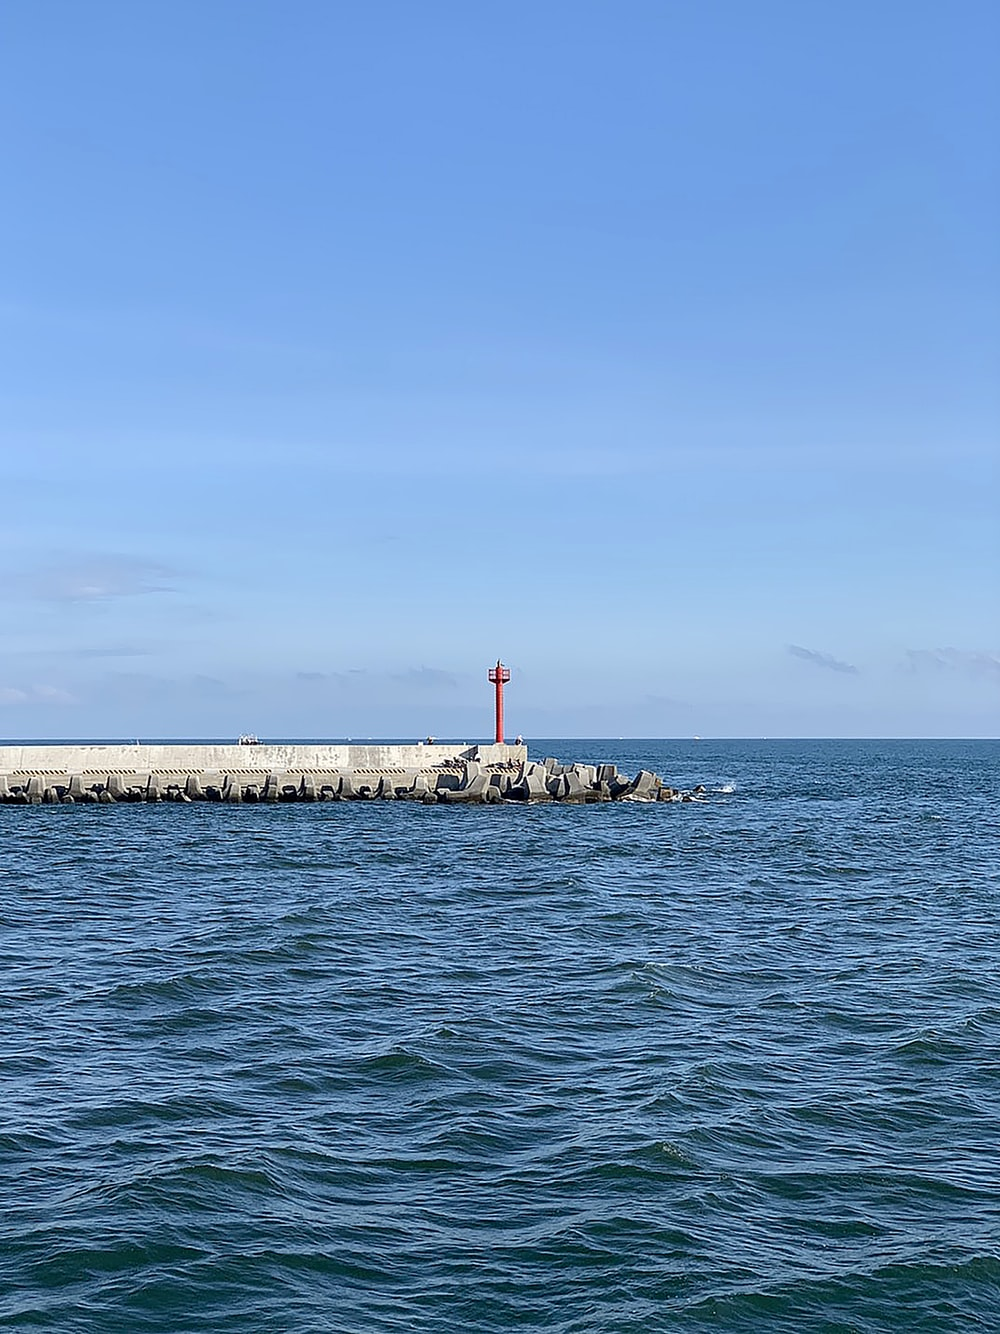 red and white lighthouse on the sea during daytime